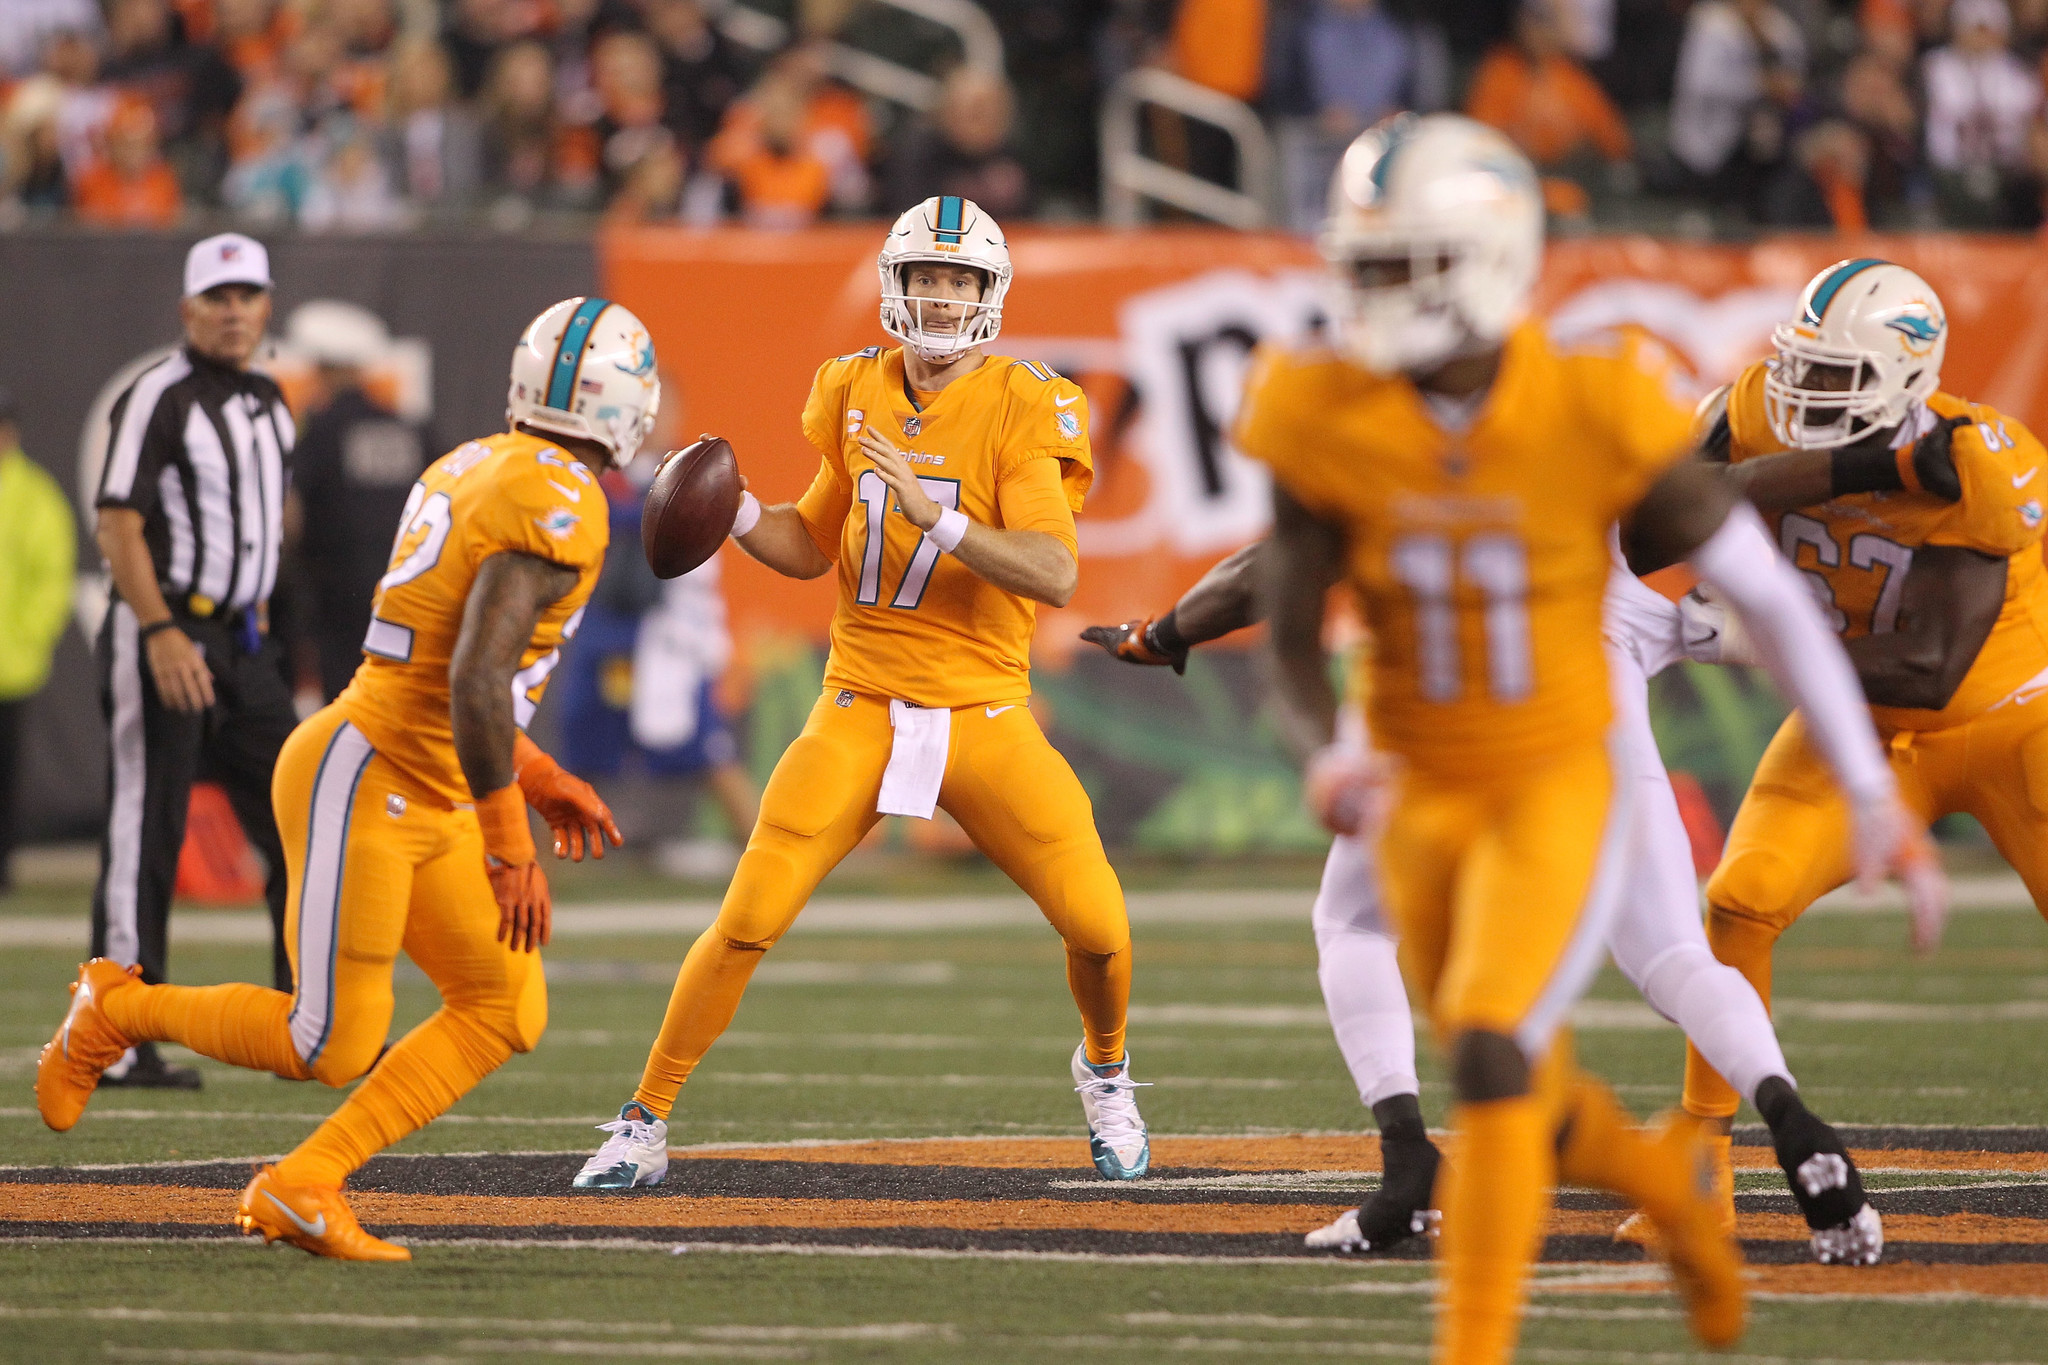 Sfl-hyde10-ten-thoughts-on-the-dolphins-loss-to-bengals-20160930